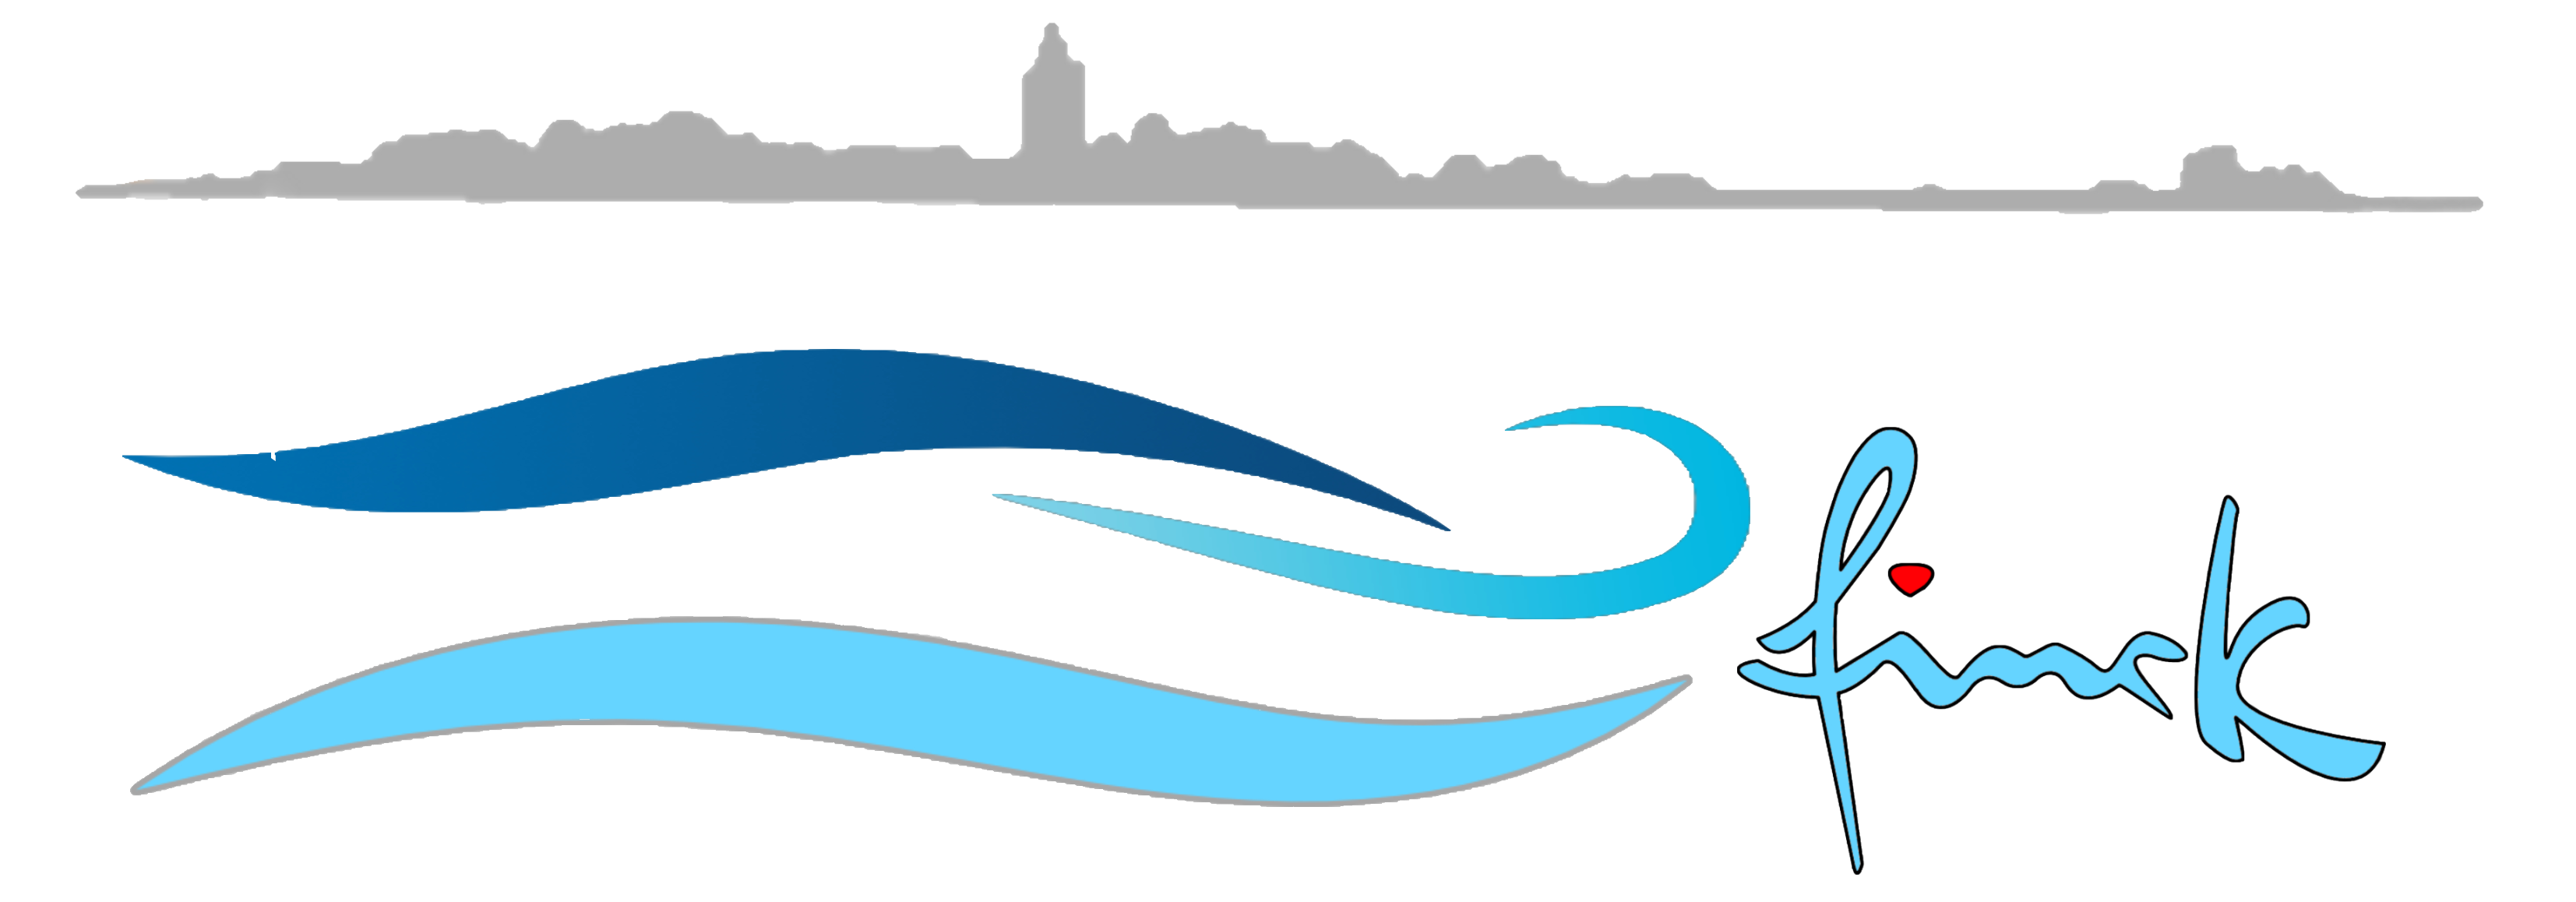 Mare Apartments Logo-Gastfreund-2.png